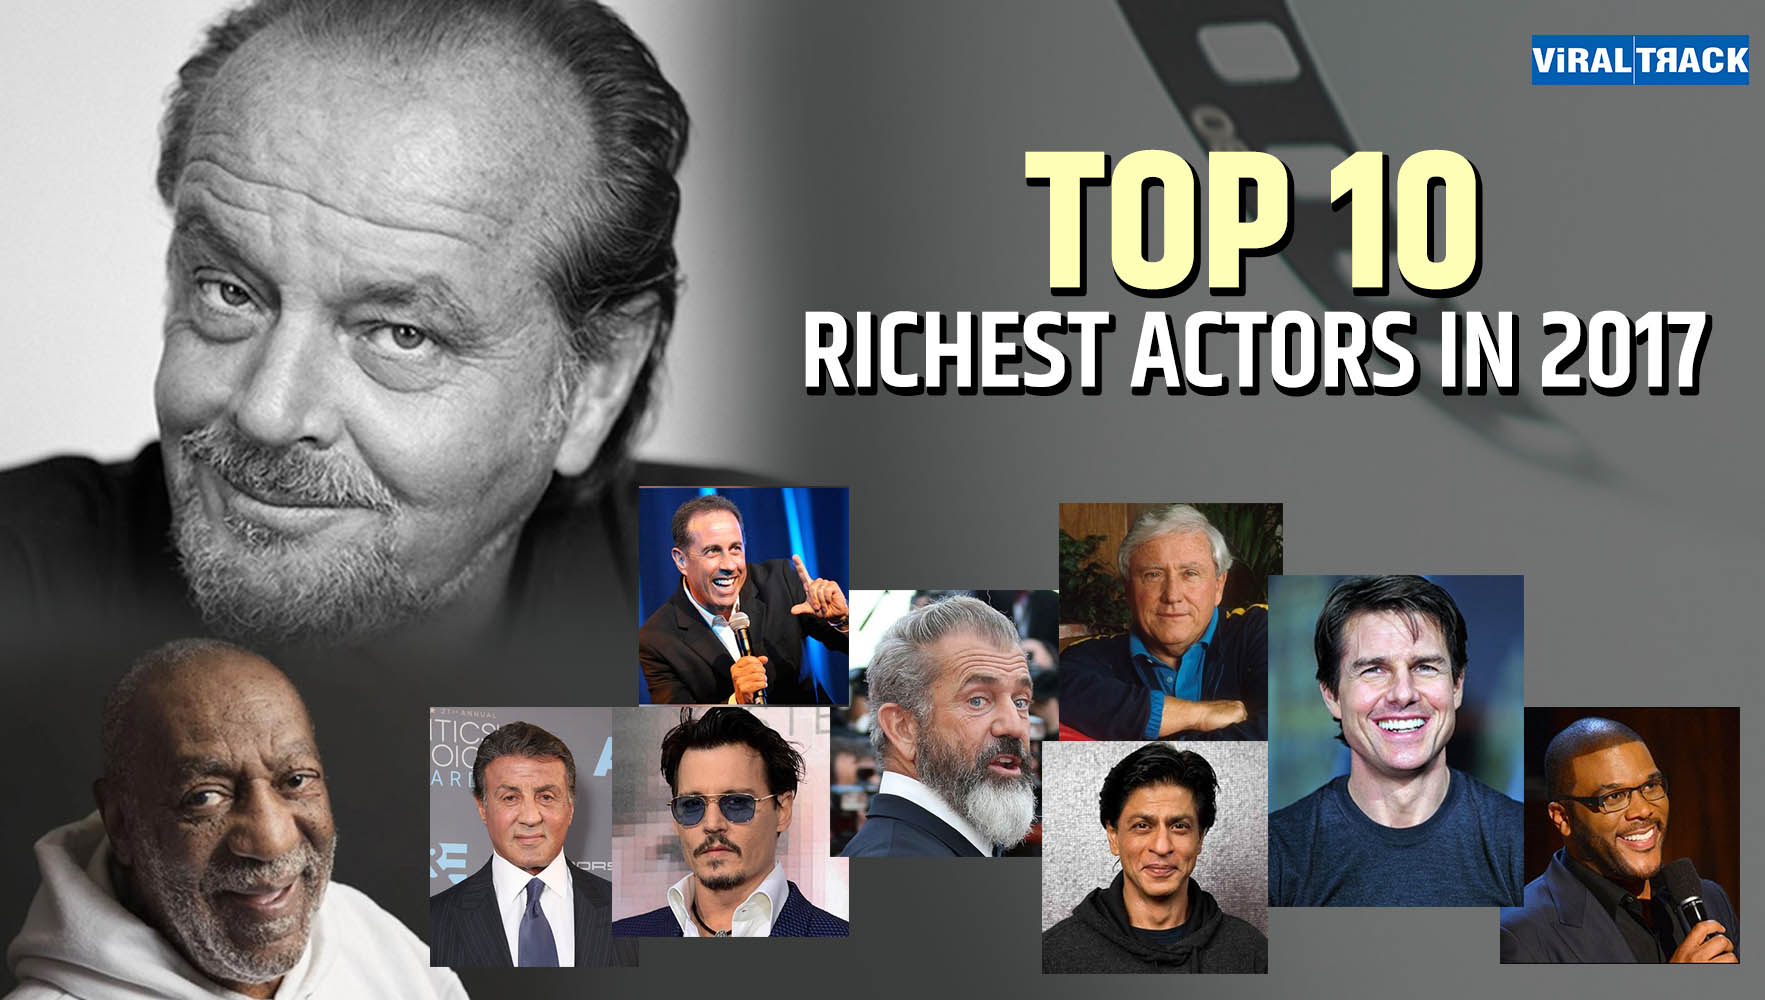 Top 10 Richest Actor of 2017, Johnny Depp Is On No. 7